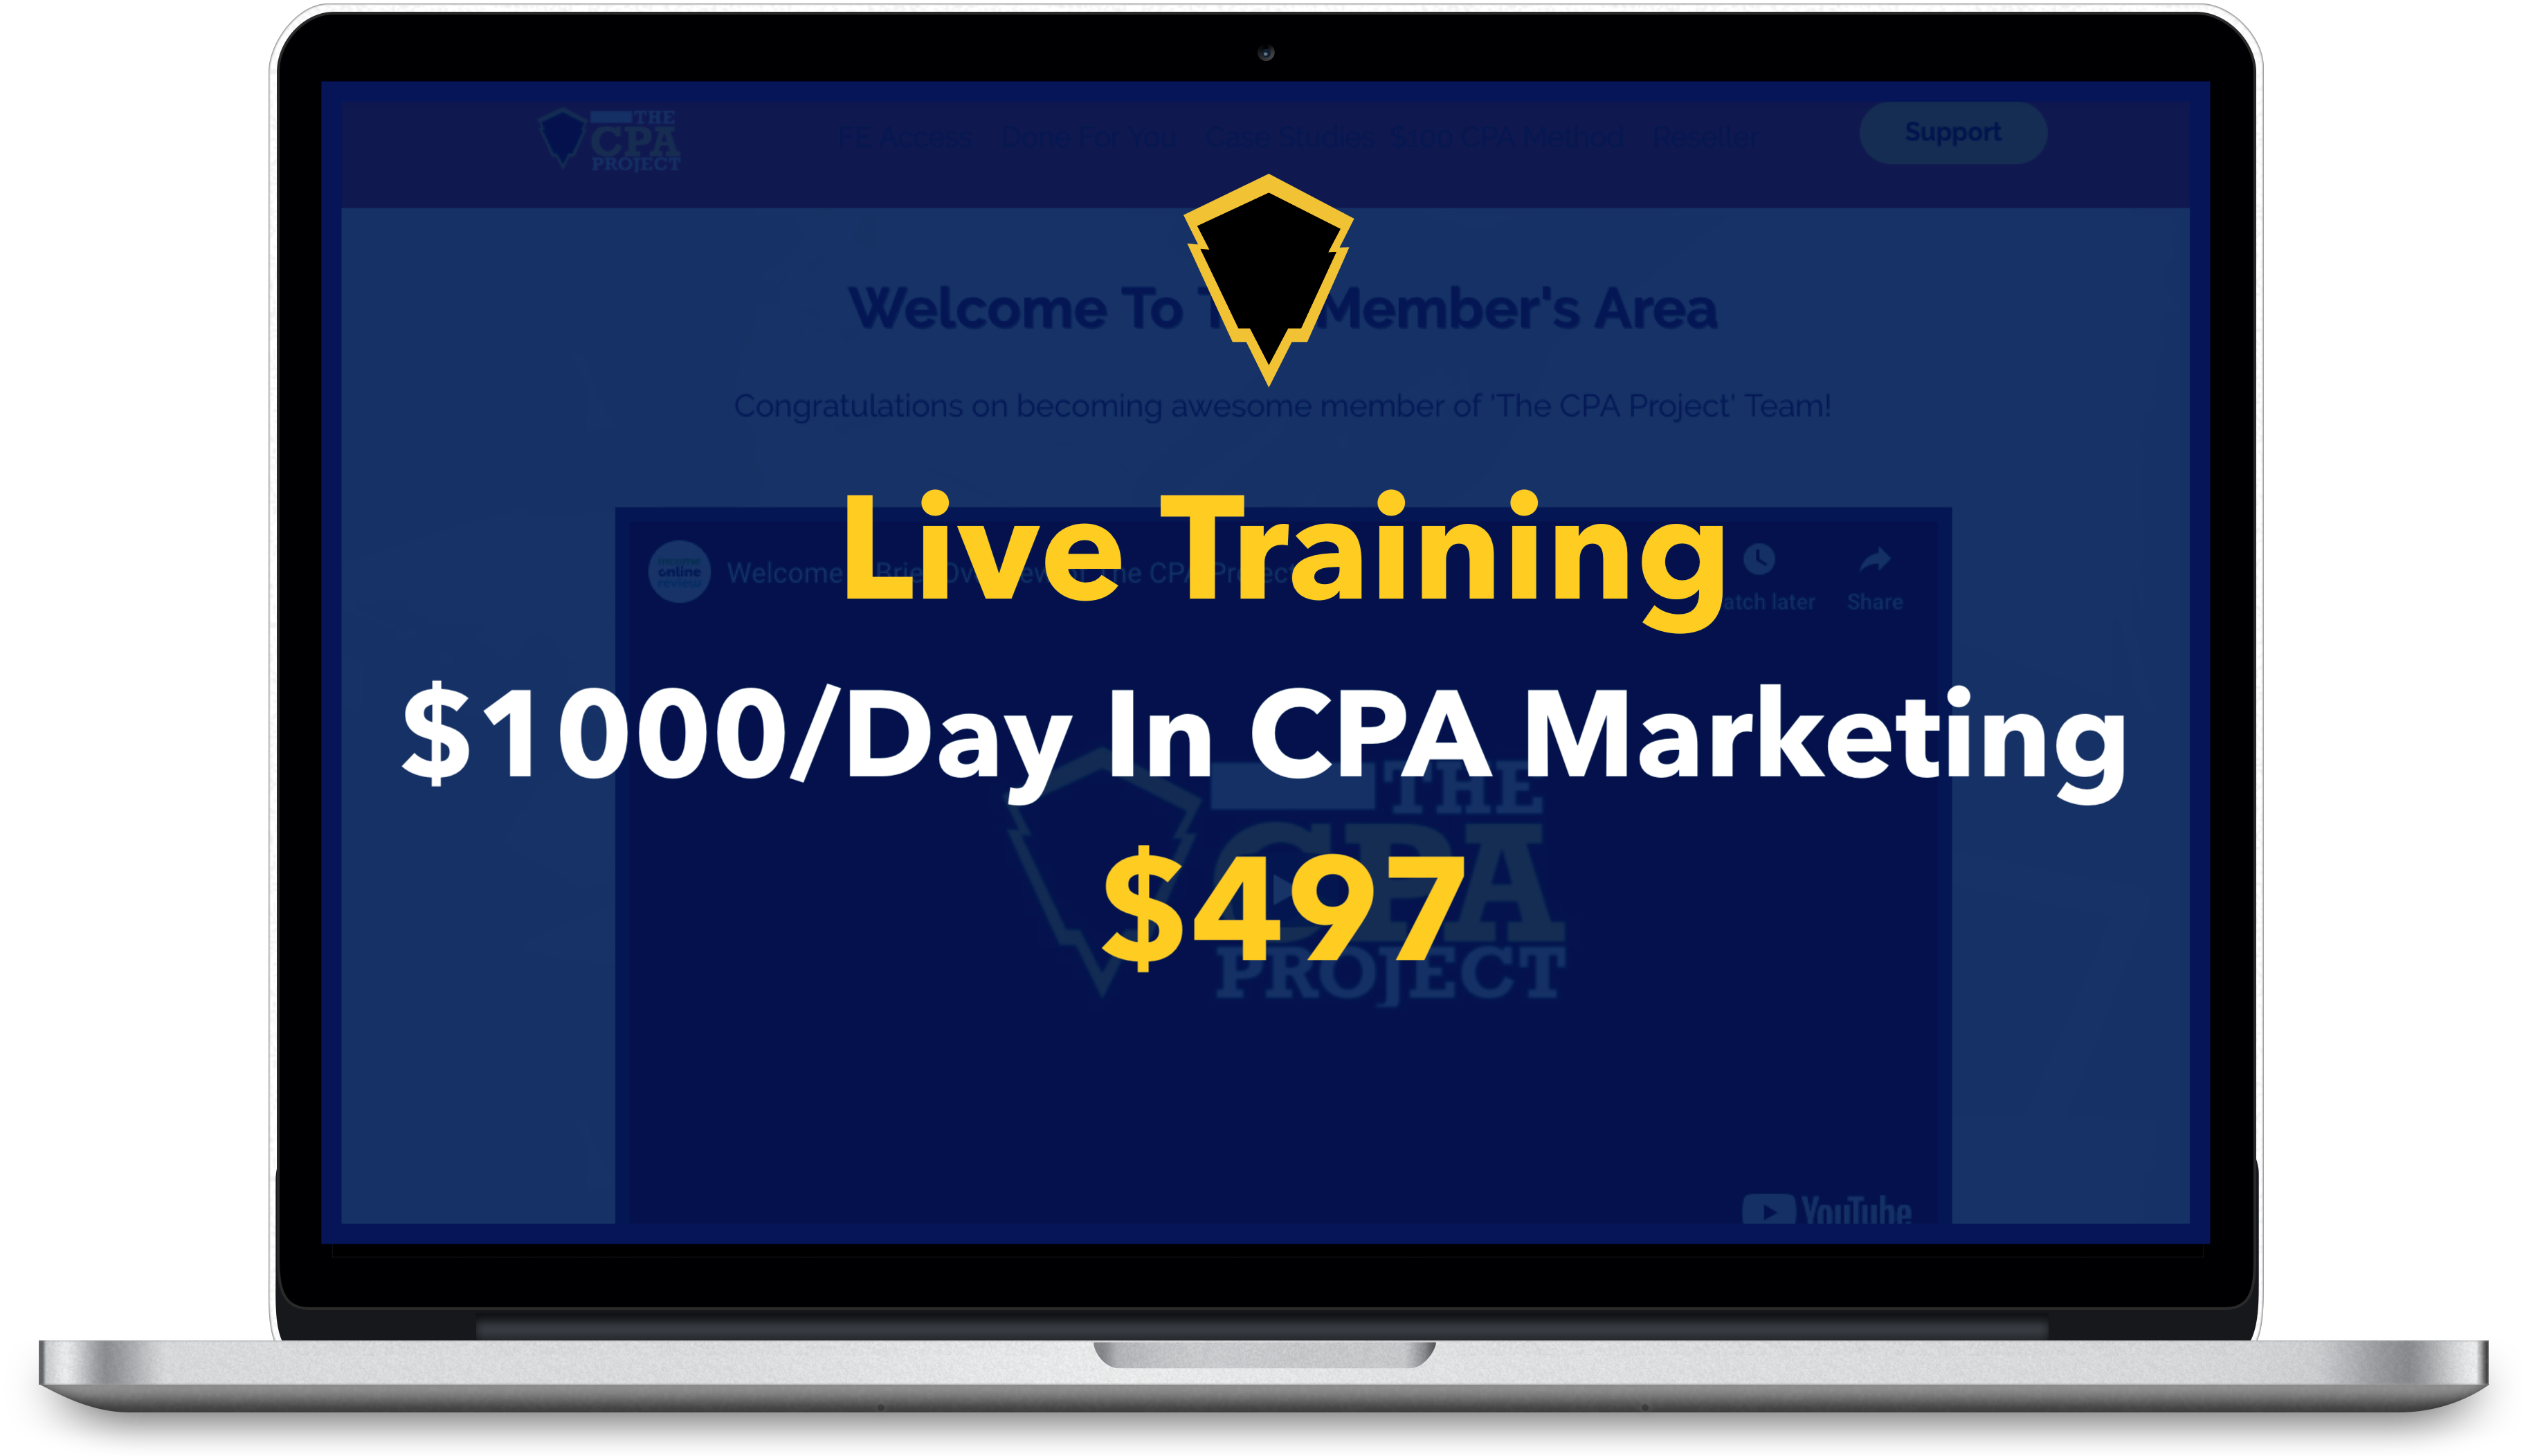 THE CPA PROJECT Review: Huge Bonus+Discount+OTO+Demo 9